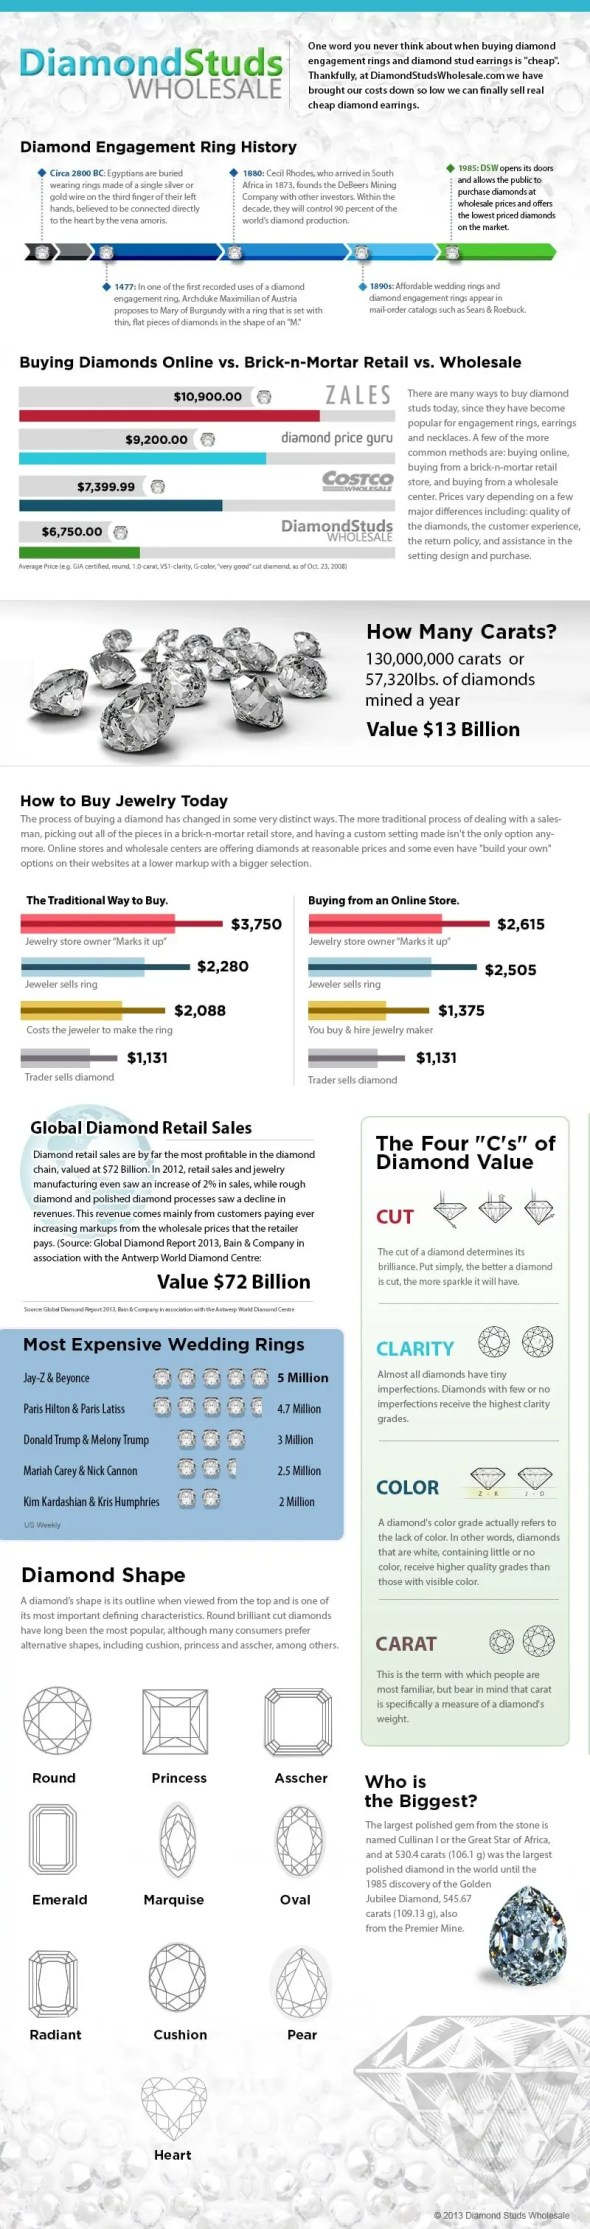 Infographic: Diamond Engagement Rings and Diamond Stud Earrings